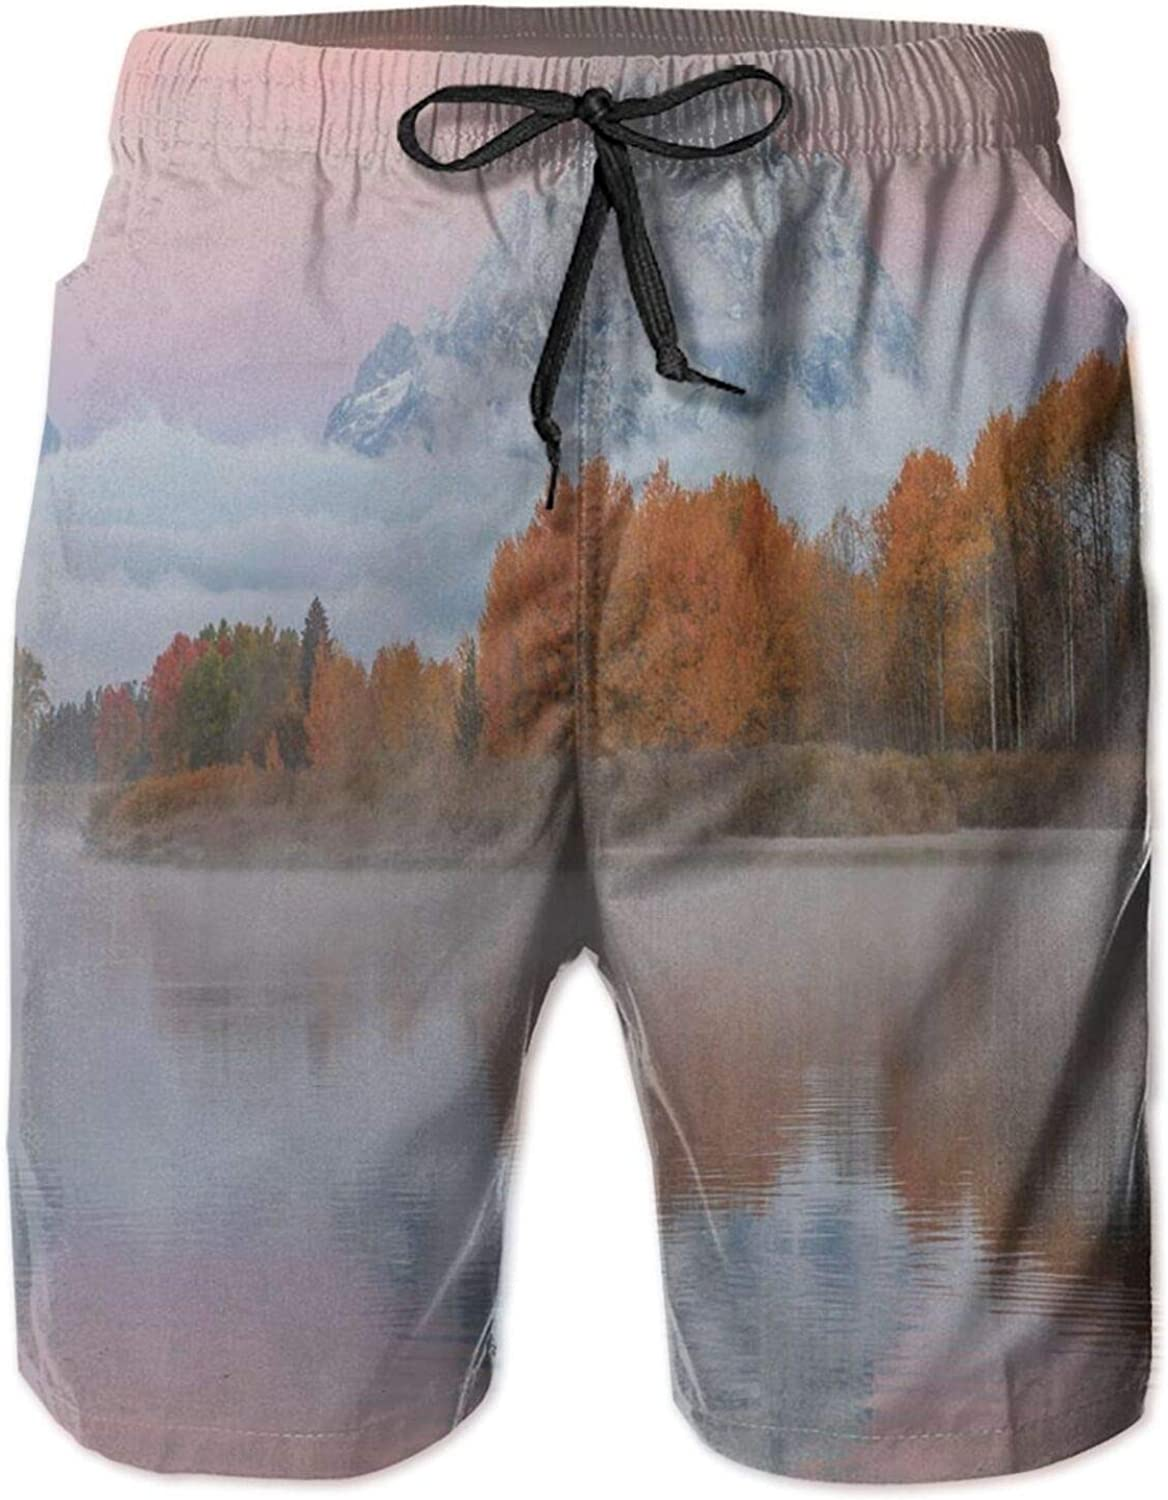 Mountains Scenery Misty Nature View Forest Lake Reflection Pink Sky Photography Swimming Trunks for Men Beach Shorts Casual Style,XL